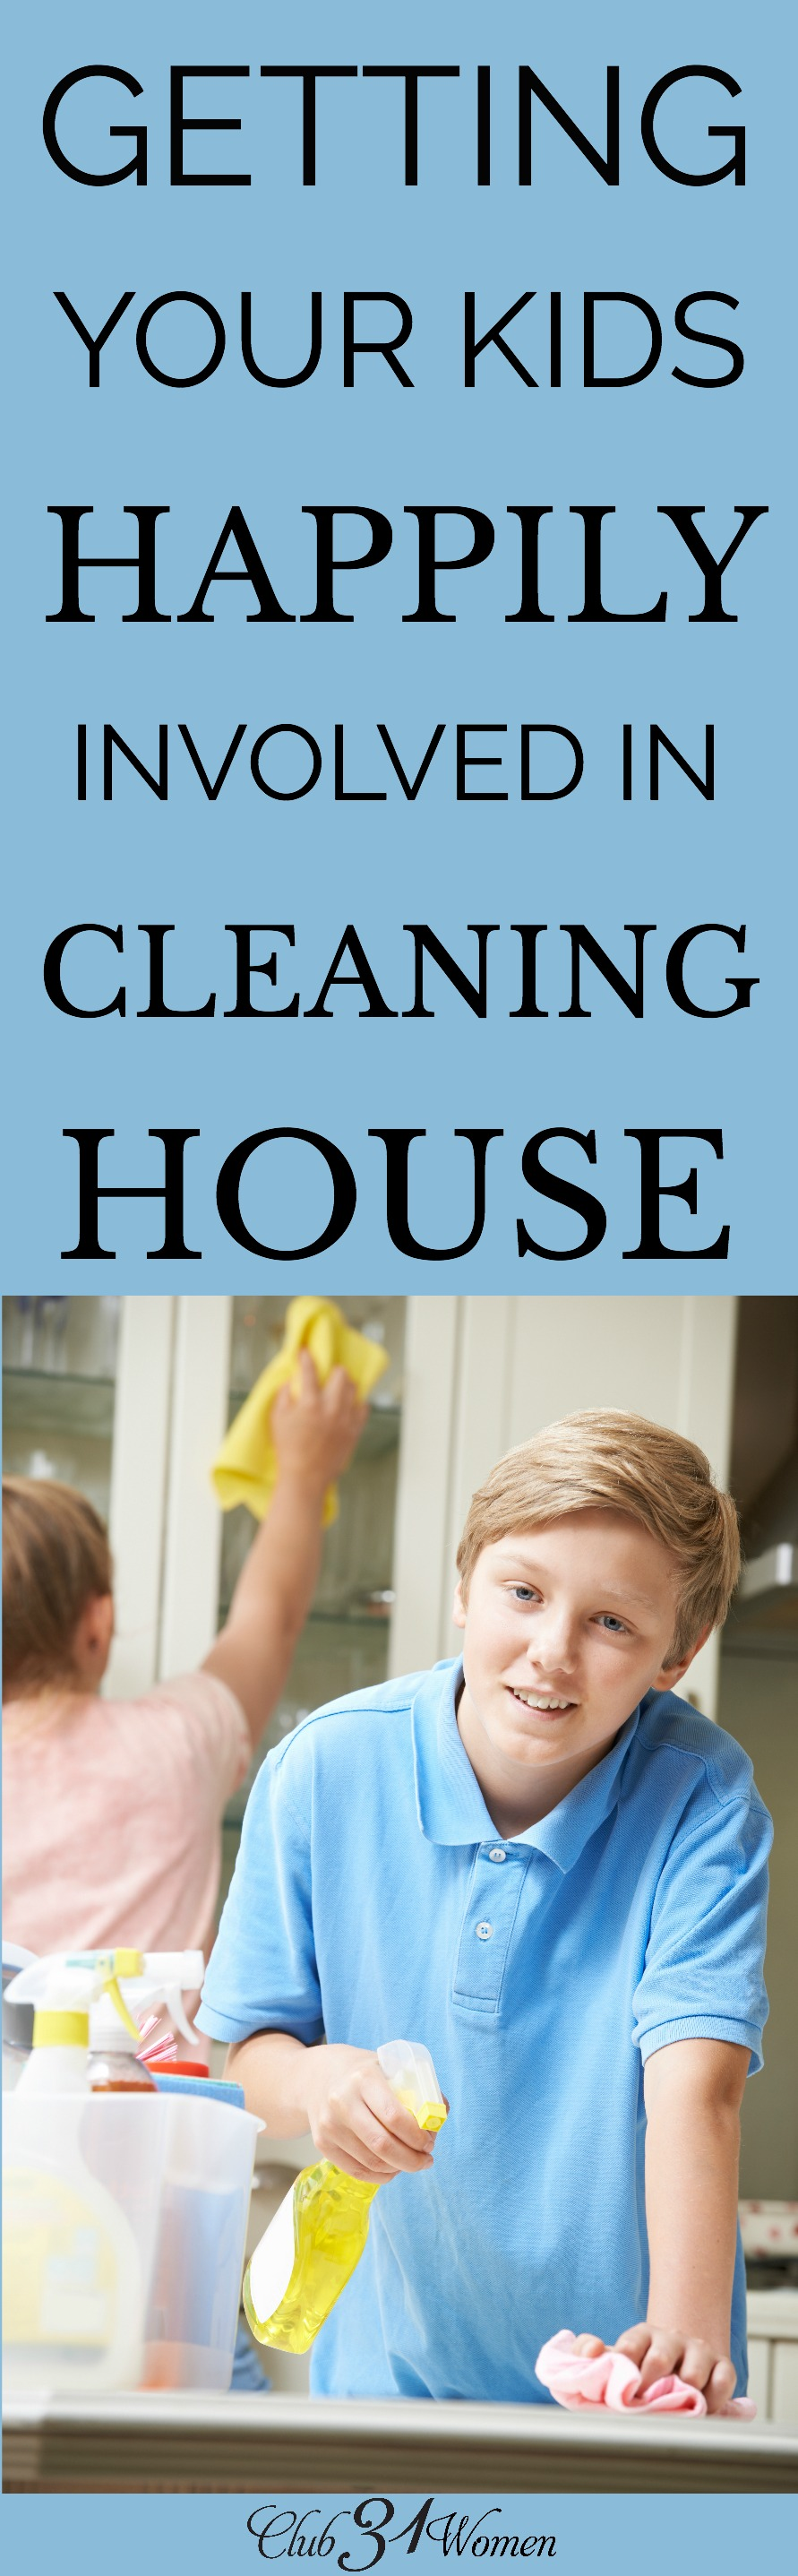 Do you struggle to get your kids involved in cleaning house? Here are some suggestions to help them feel part of making their house a home. via @Club31Women